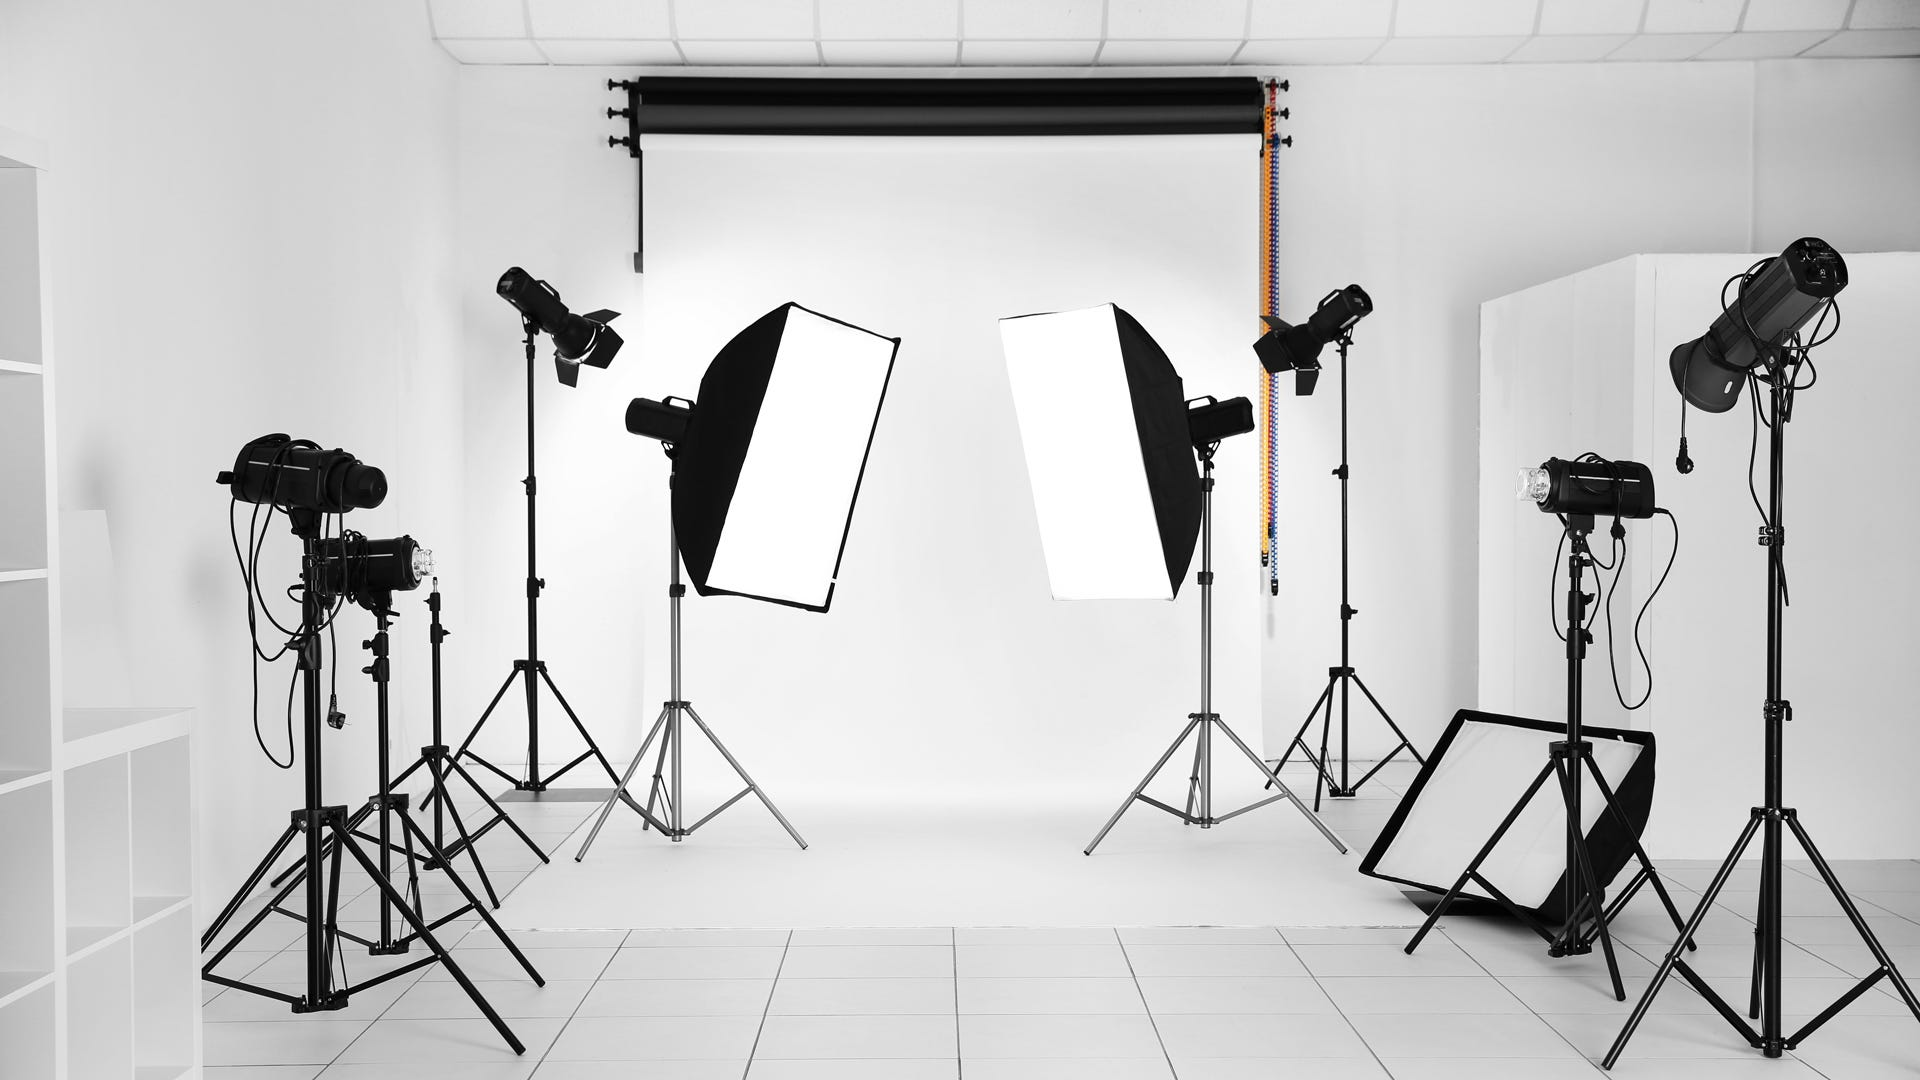 Key lights fill lights hair lights and more different lighting uses for studio strobes